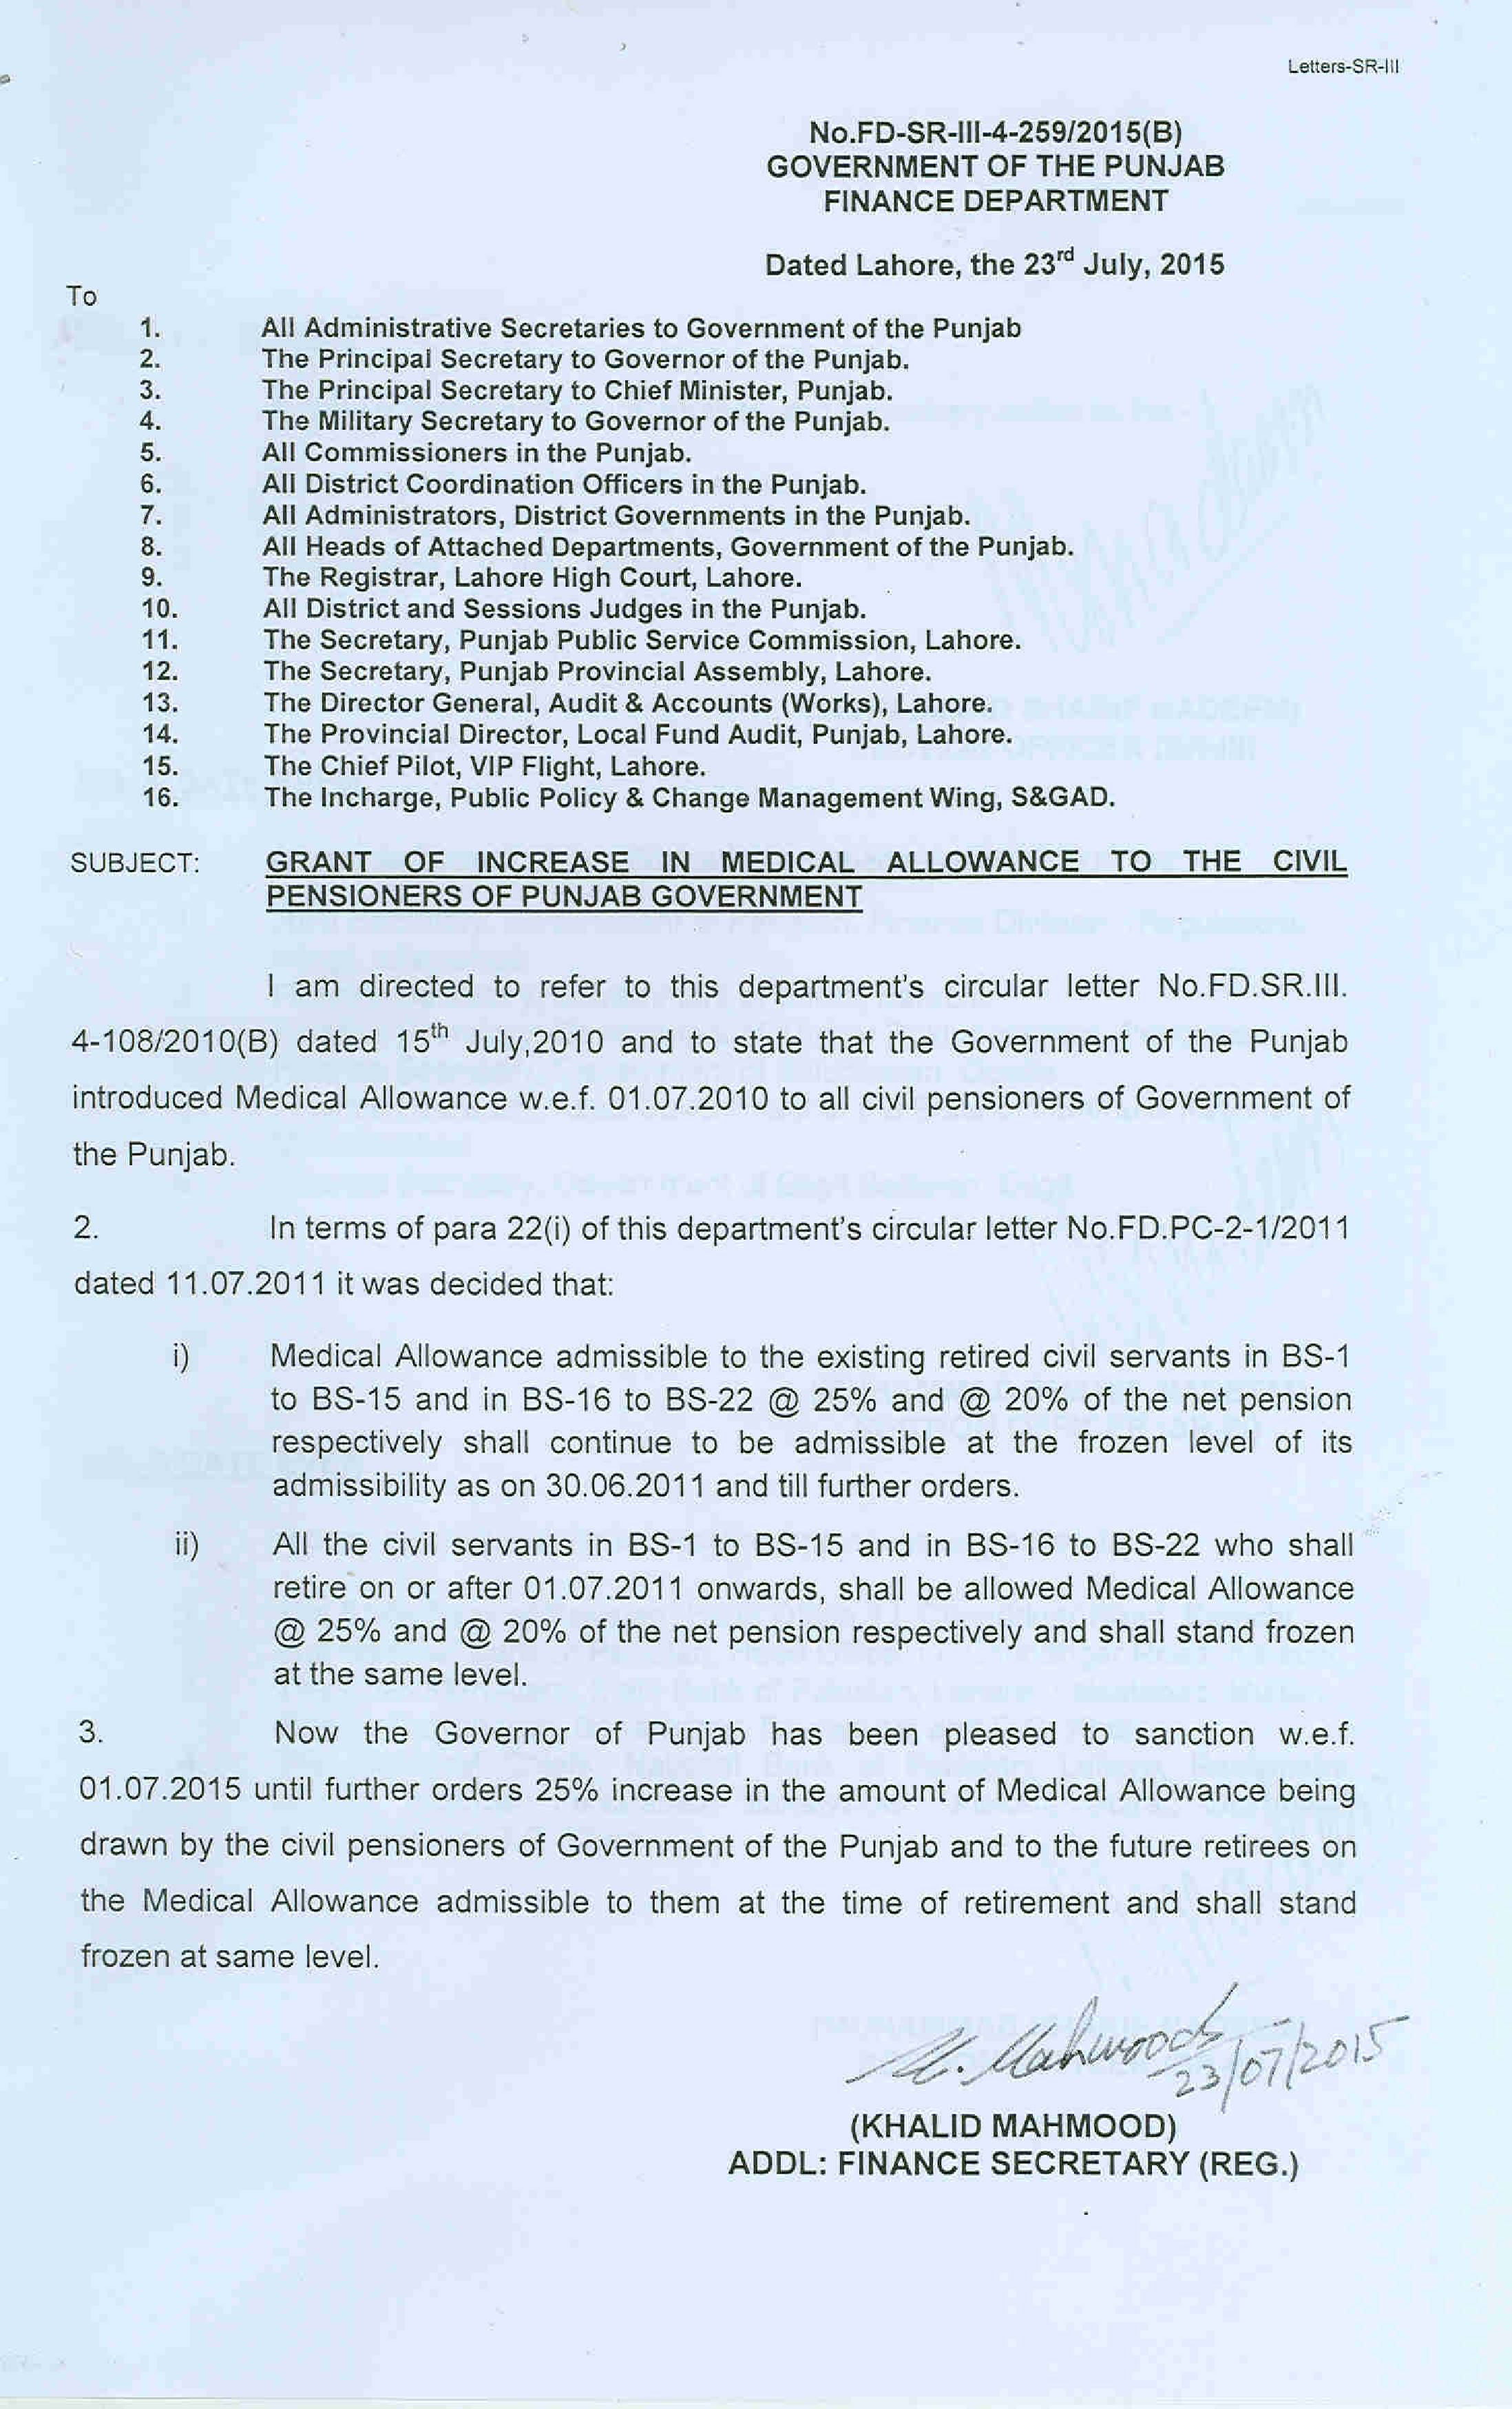 GRANT OF INCREASE IN MEDICAL ALLOWANCE TO PENSIONERS OF PUNJAB GOVERNMENT